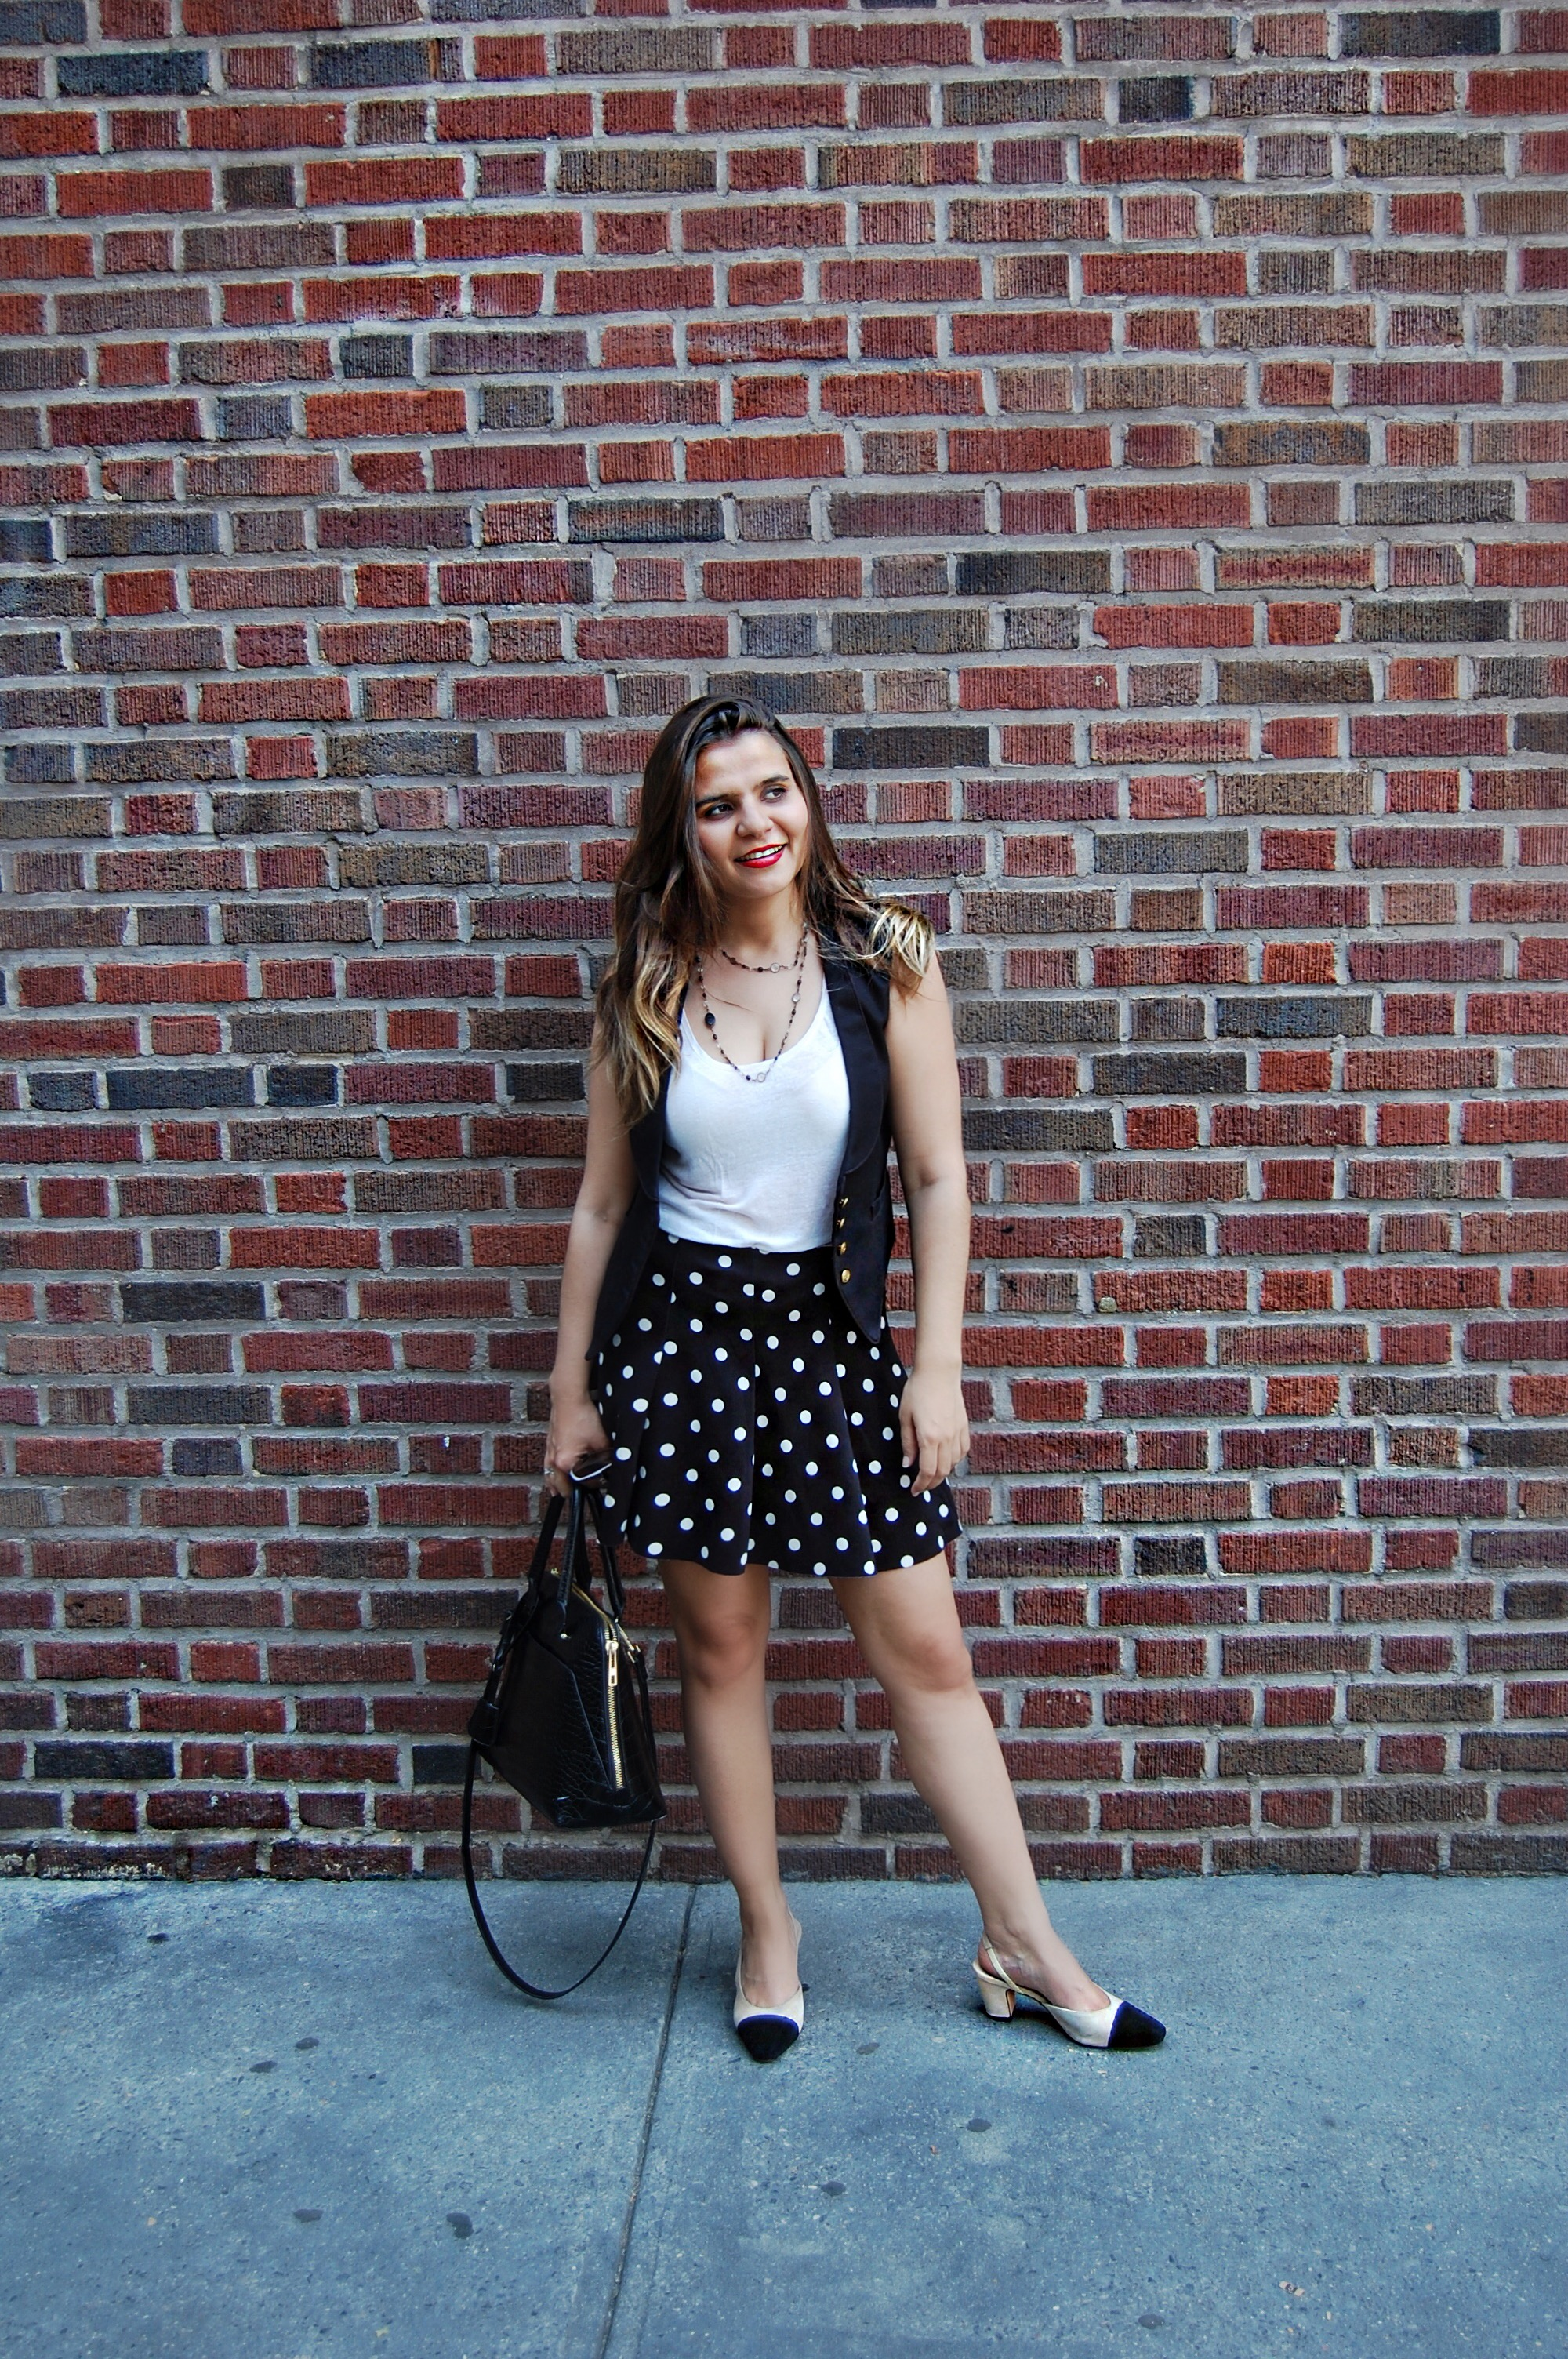 west_village_new_york_fashion_blogger_alley_girl11